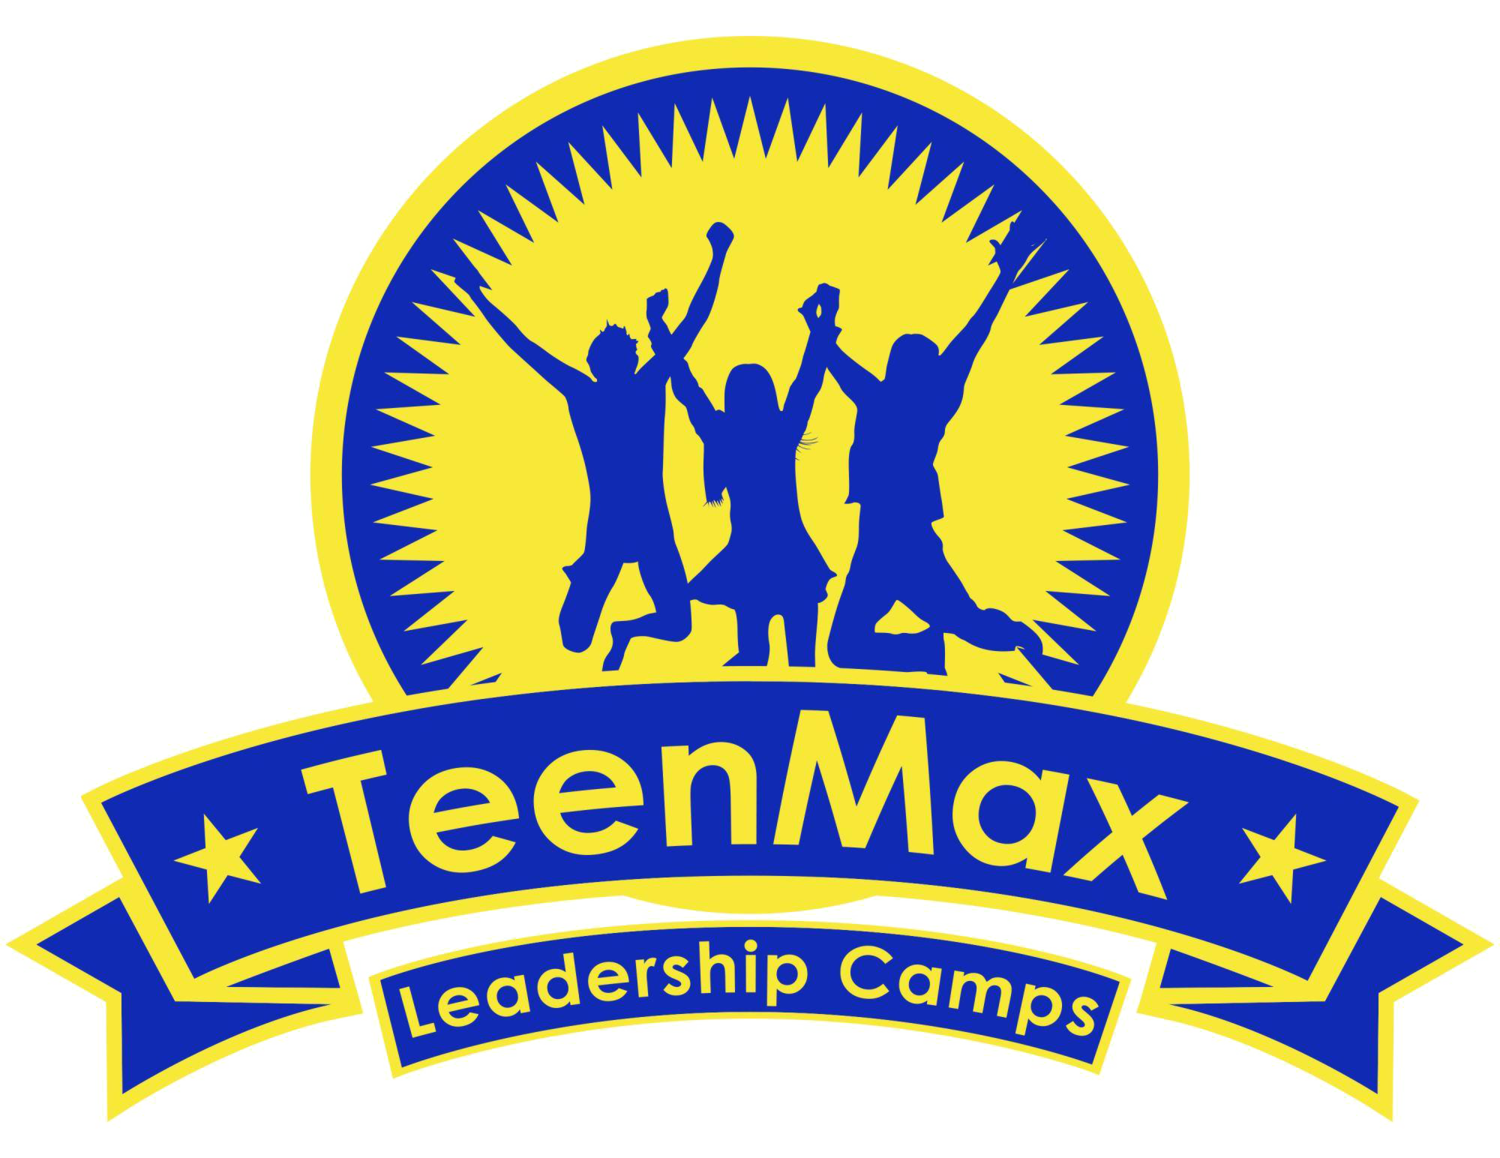 TeenMax Camps